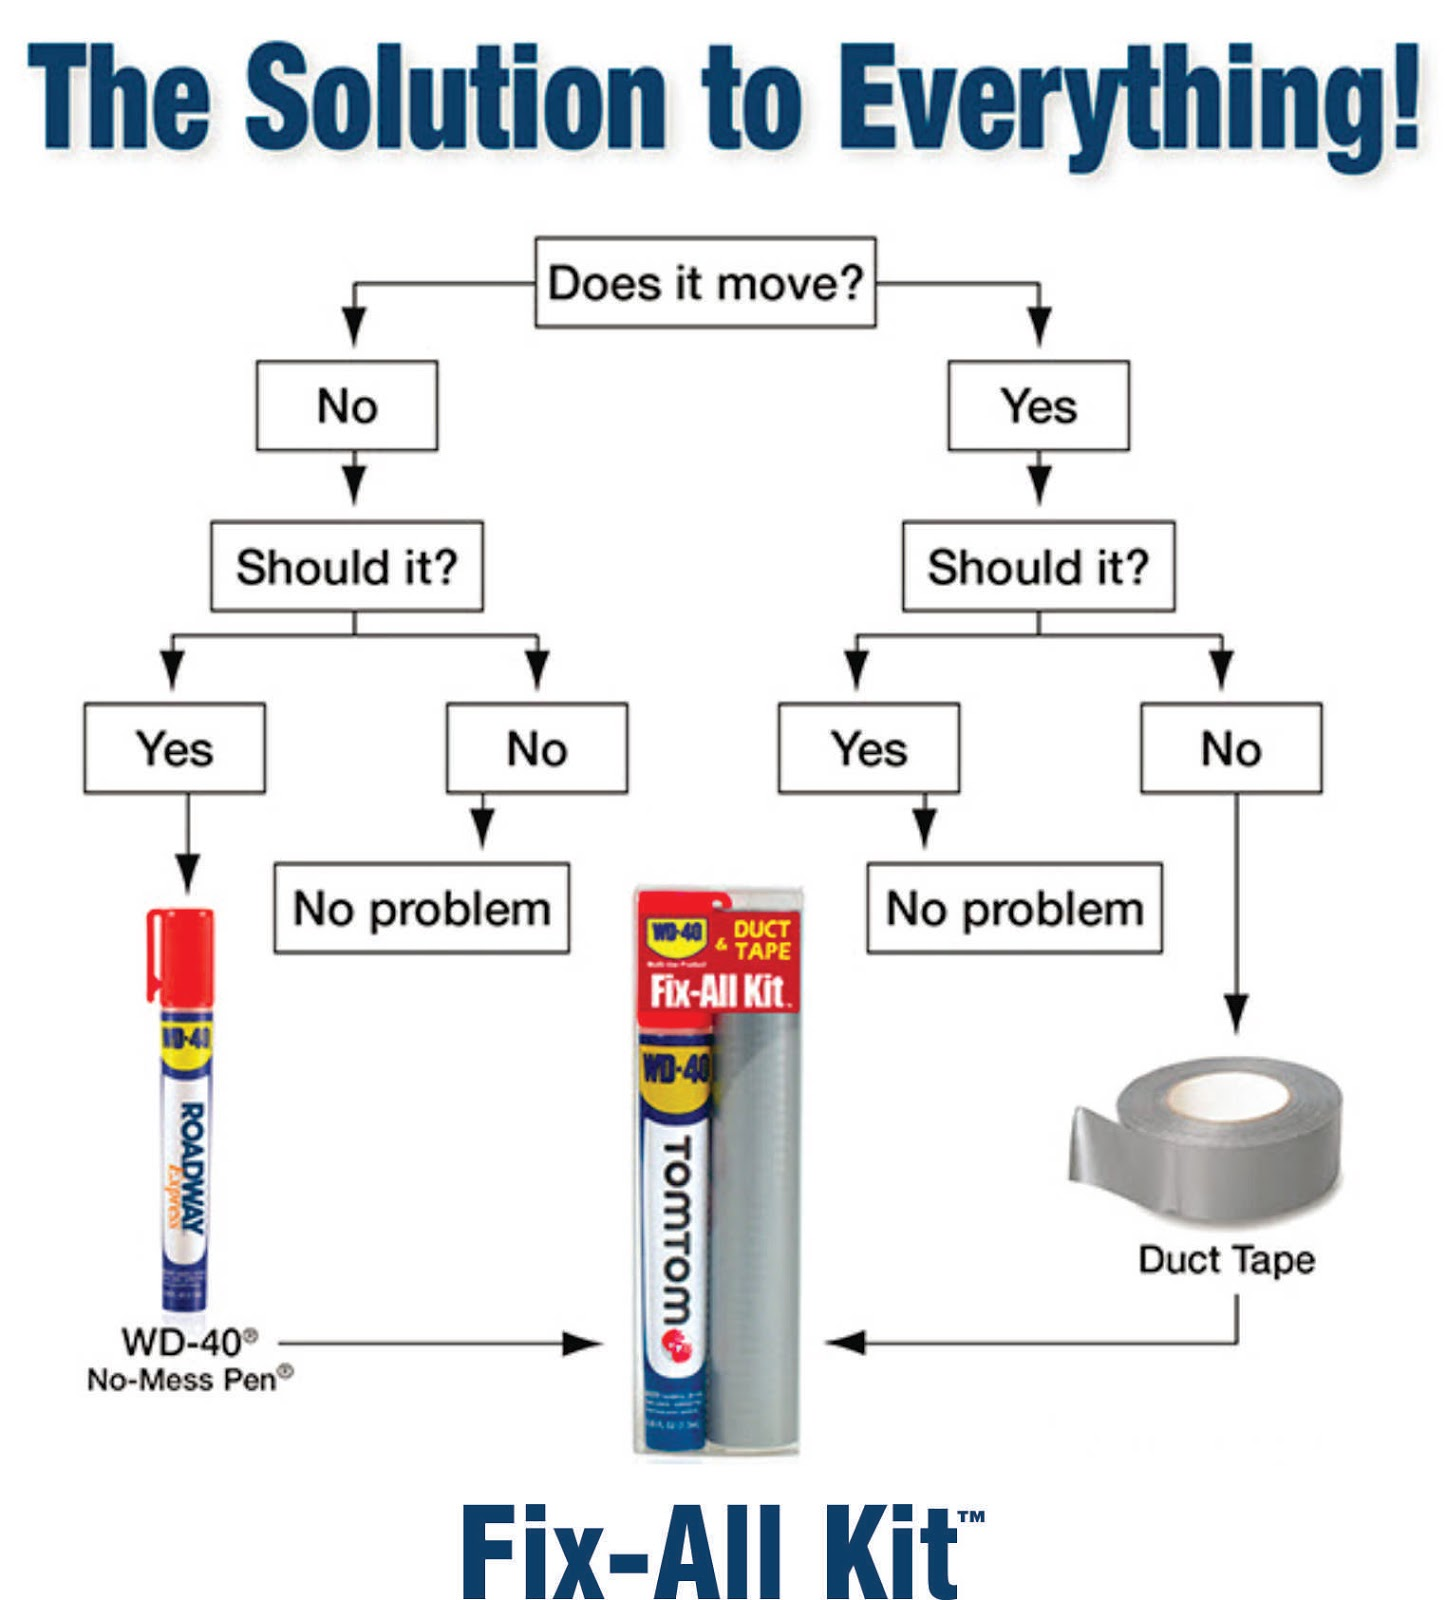 Wd  duct tape the solution to everything also cool stuff promo products rh promoman